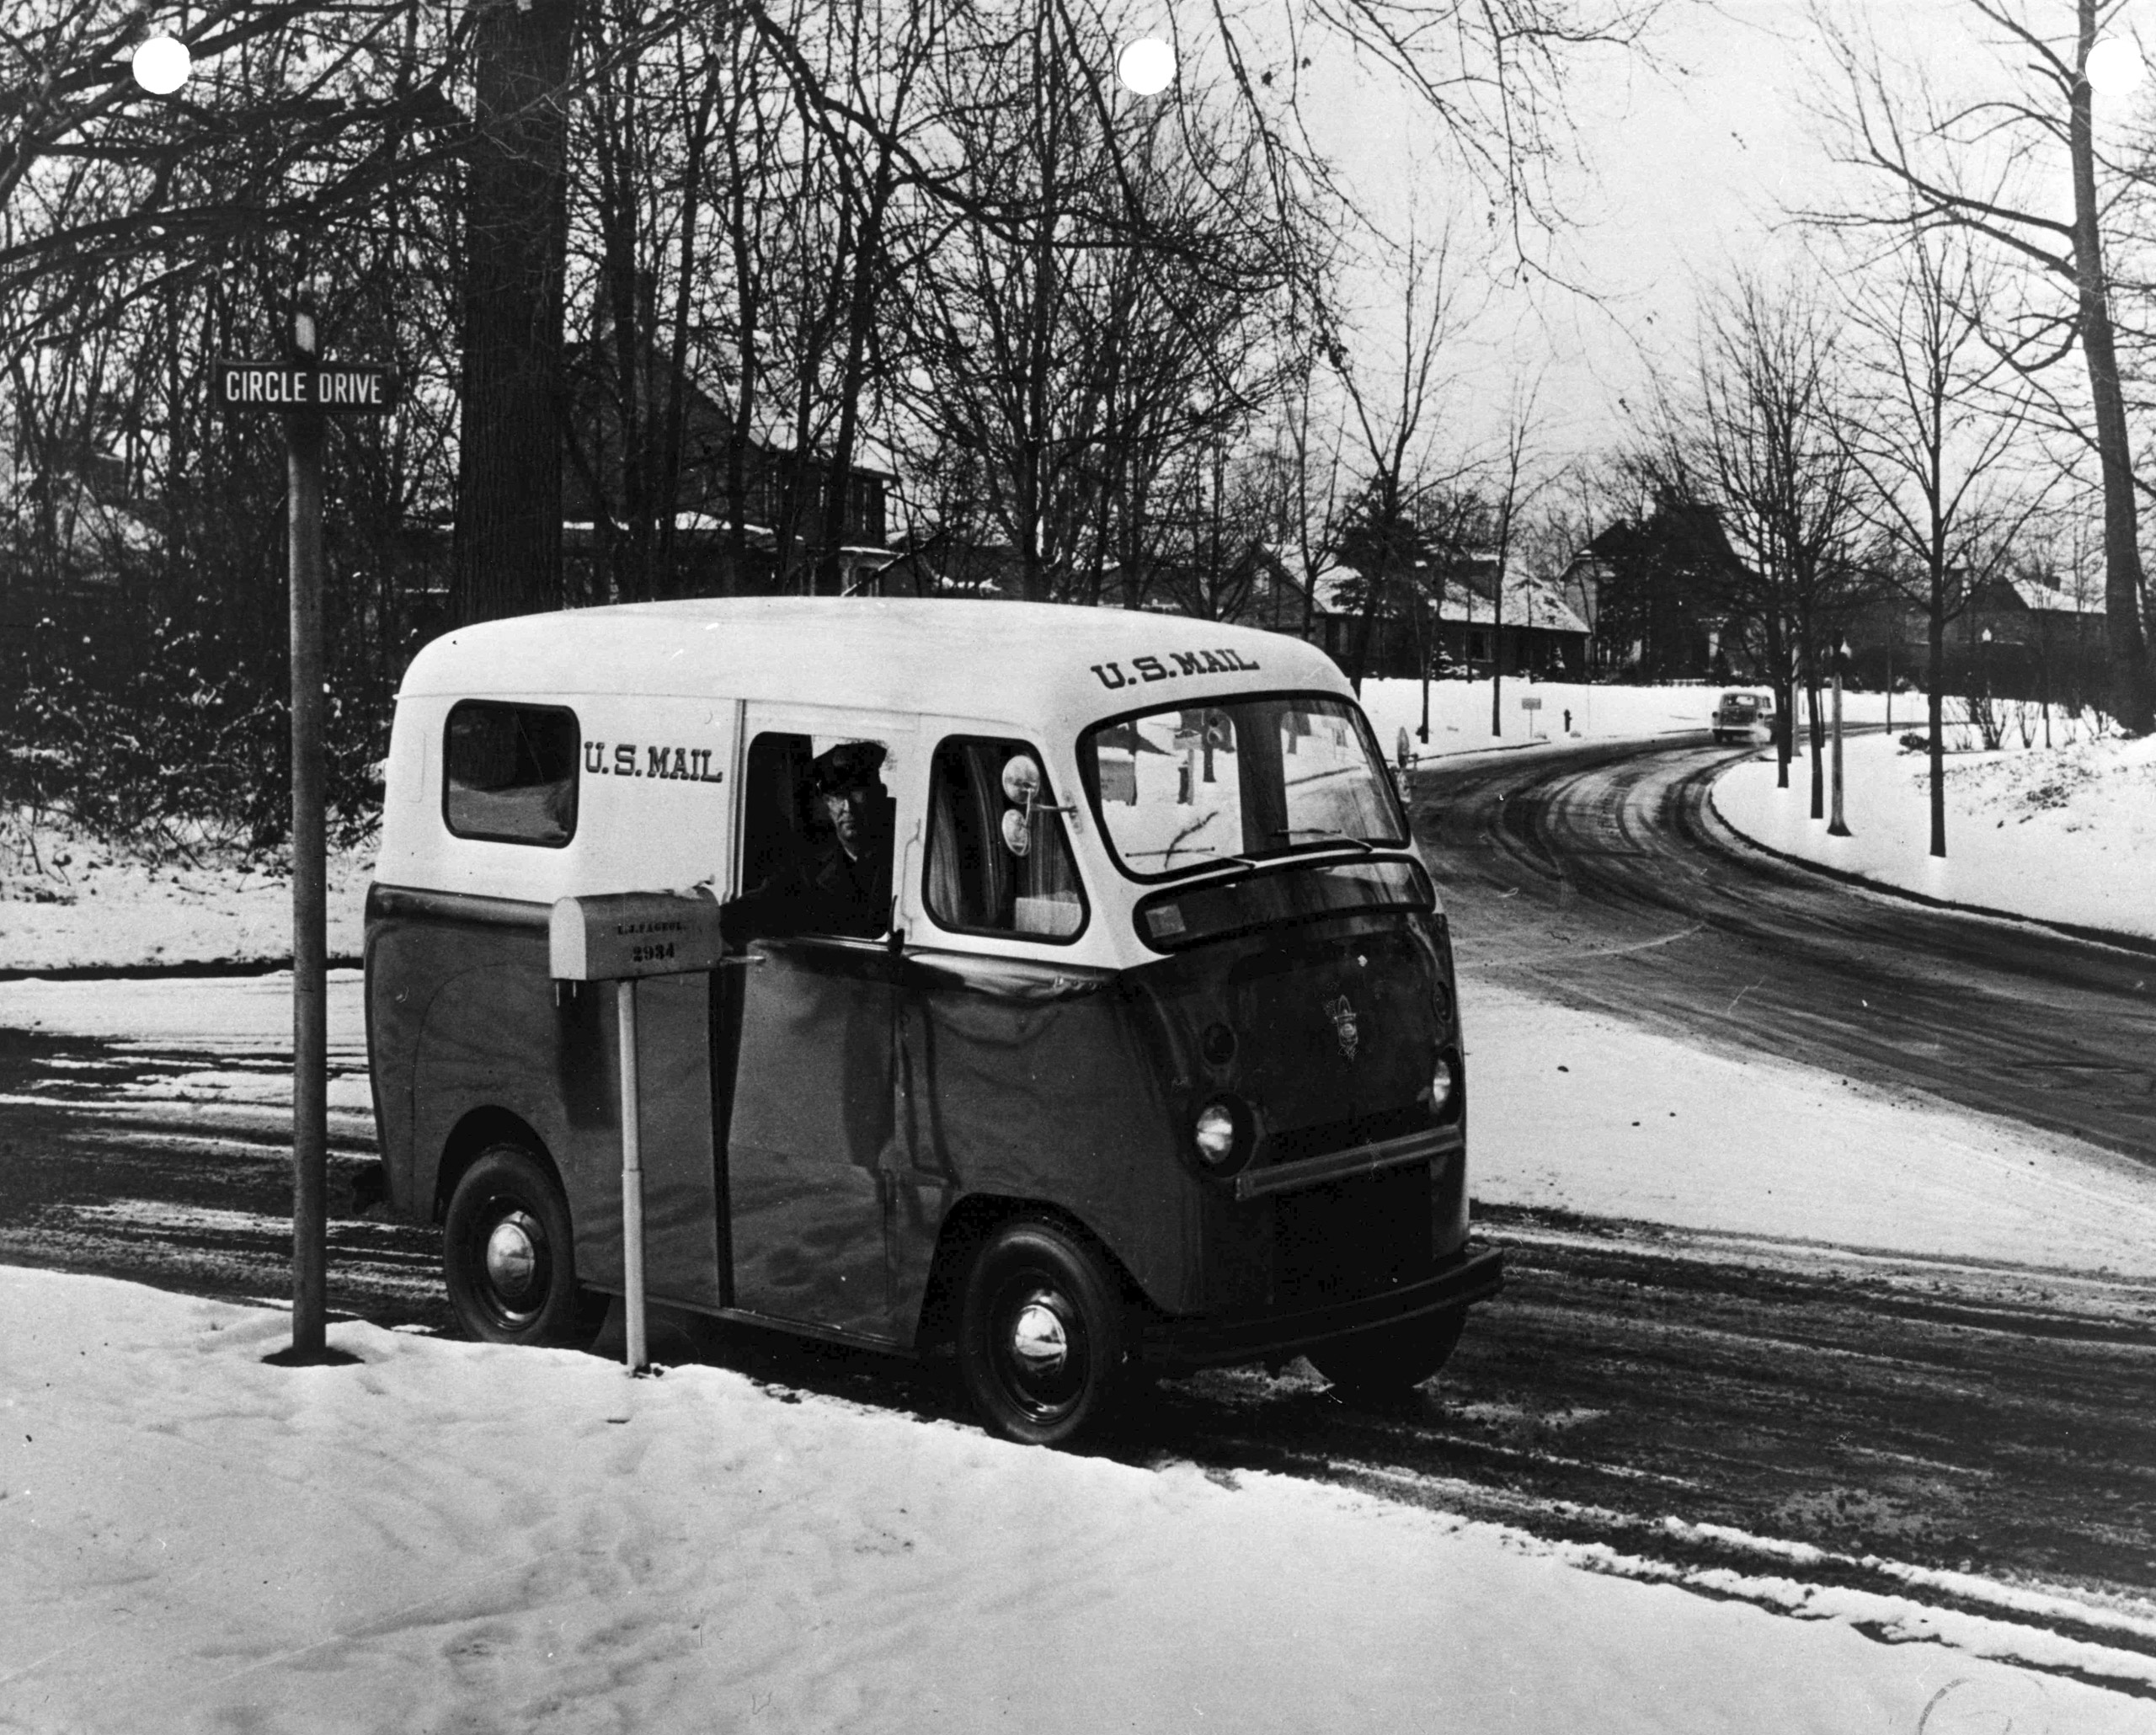 In 1953, a letter carrier drives one of the Department's new right-hand drive vans on the snowy streets of an unidentified city. The Department ordered thousands of new postal vehicles in the early 1950s as part of its post-war modernization plan. Few of the dozens of different vehicles ordered during that drive were re-ordered in large quantities.